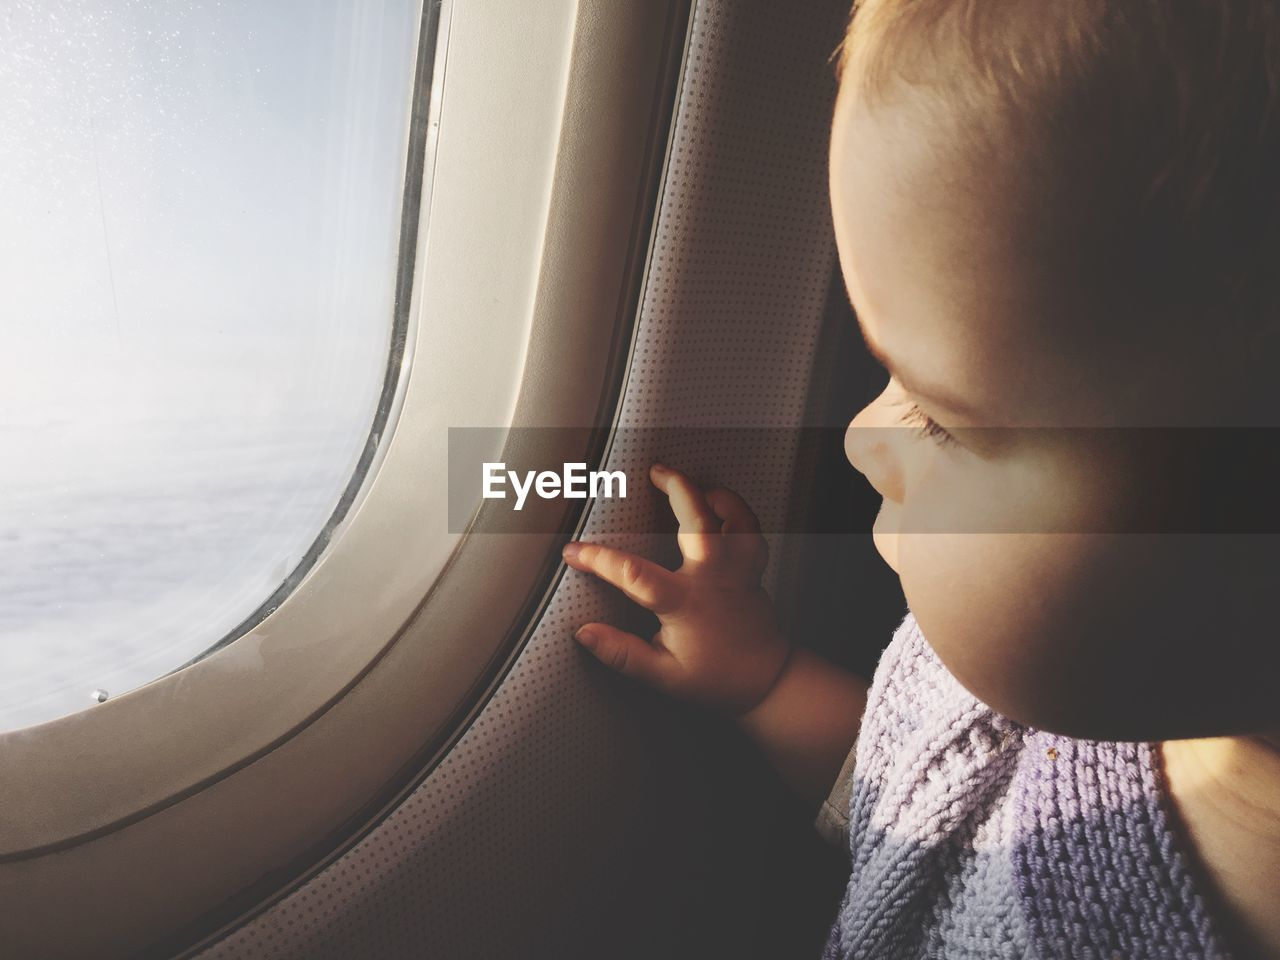 child, childhood, airplane, air vehicle, window, real people, transportation, one person, vehicle interior, mode of transportation, boys, males, headshot, men, looking through window, travel, flying, lifestyles, looking, transparent, innocence, outdoors